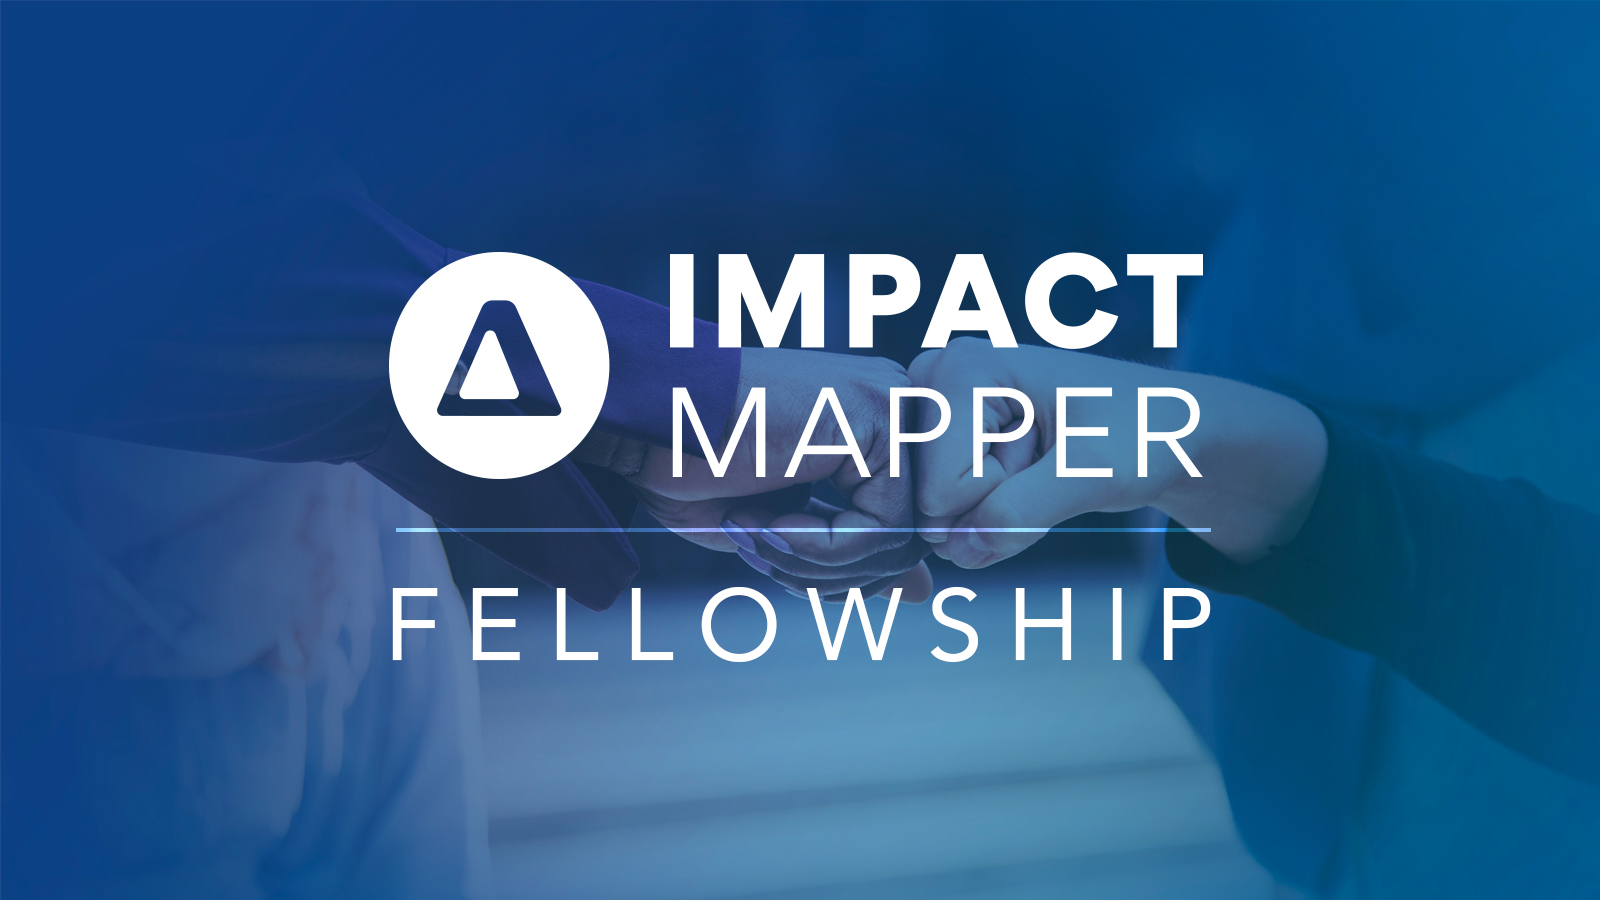 Improve your M&E efforts through the ImpactMapper Fellowship 2020!